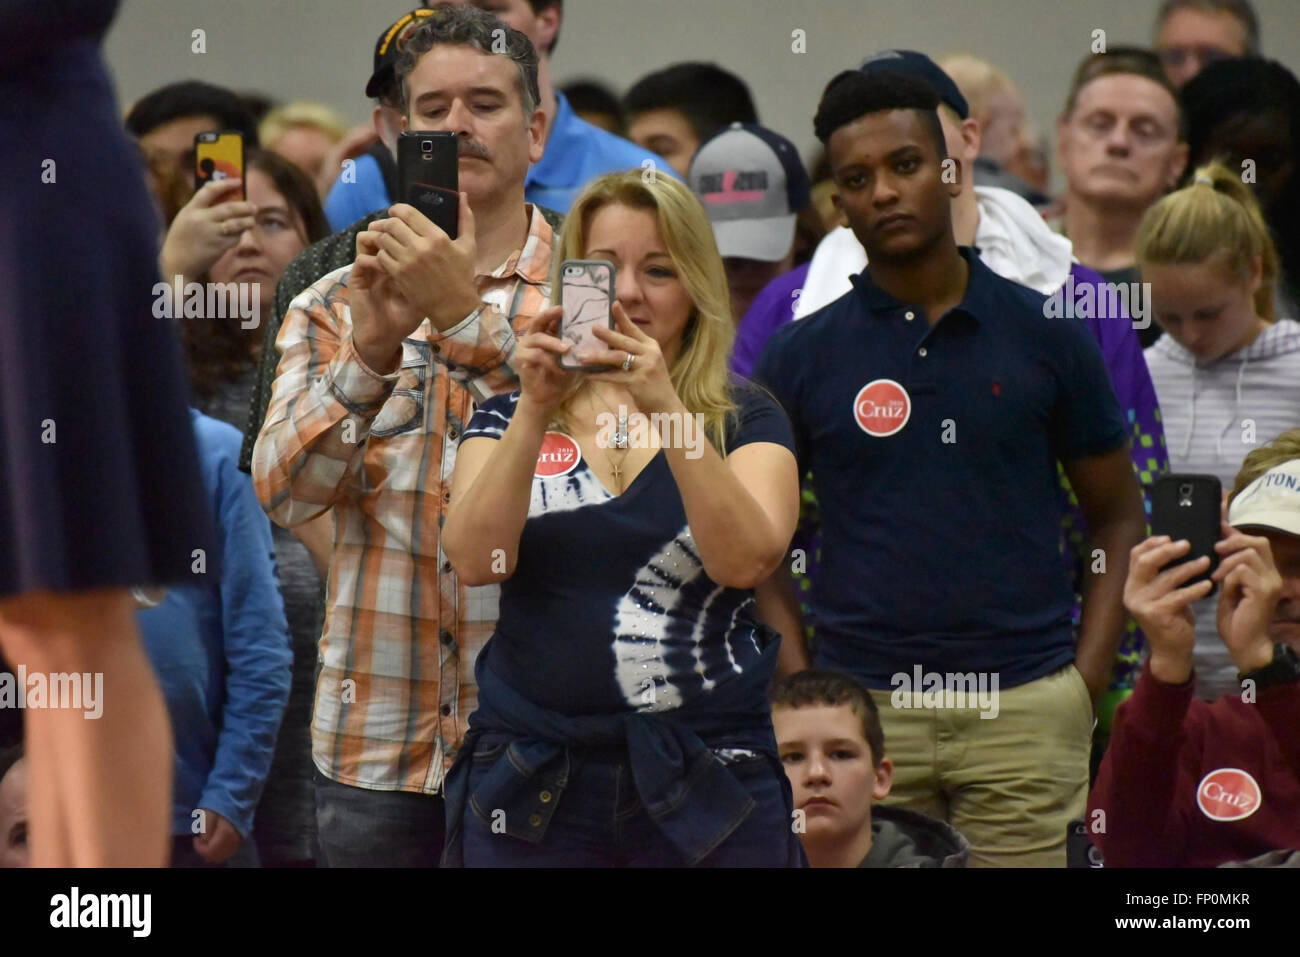 Saint Louis, MO, USA - March 12, 2016: Ted Cruz supporters snap photos of Carly Fiorina as she stumps for the Republican - Stock Image